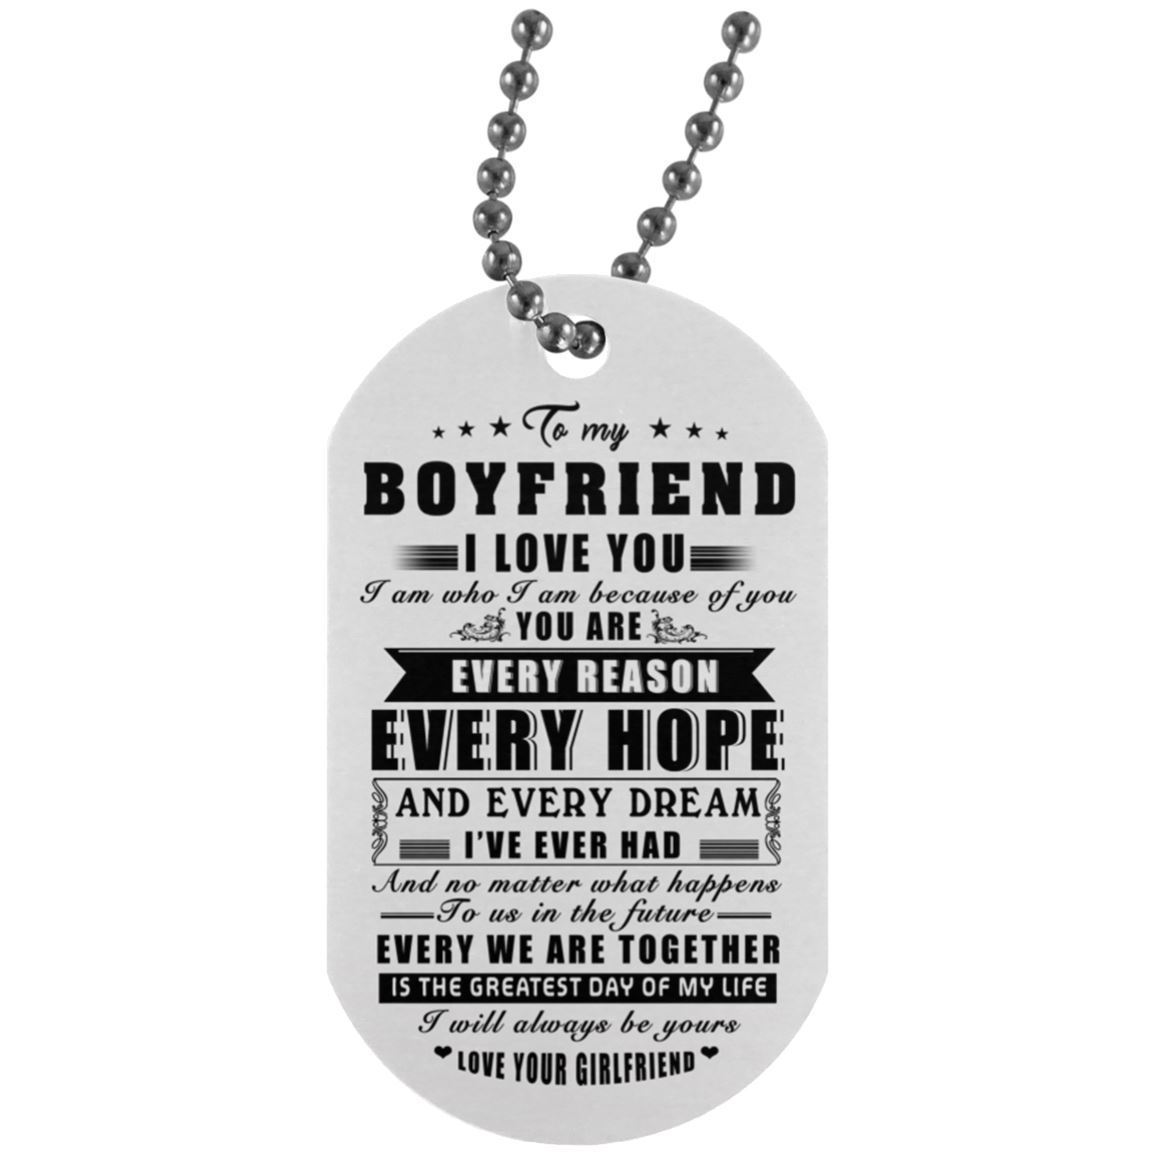 chain jewelry friend stainless wife and products super women stop zmzy husband floating with my steel tomyhusband pendant necklaces plates shop necklace best to for